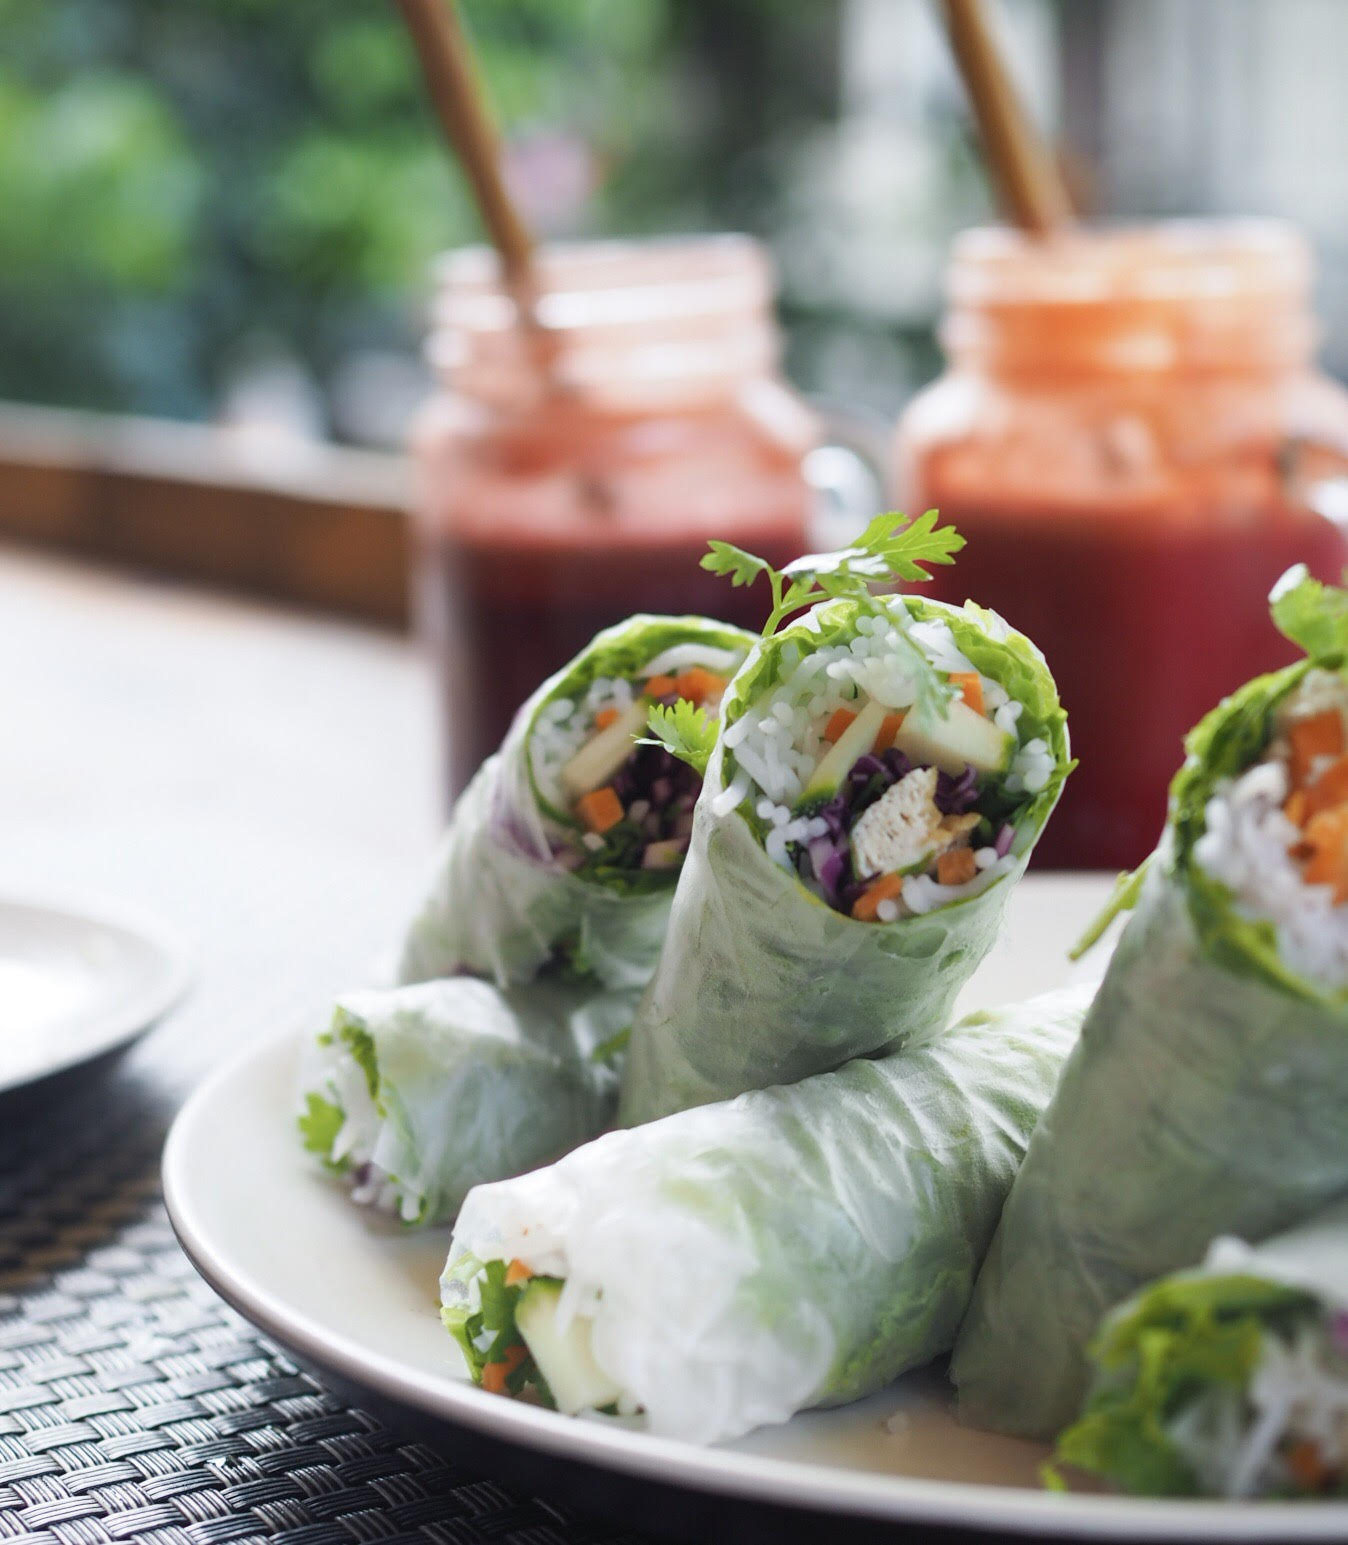 Jalus vegan café i Hanoi. Fresh vegan spring rolls in Hanoi and beetroot juice